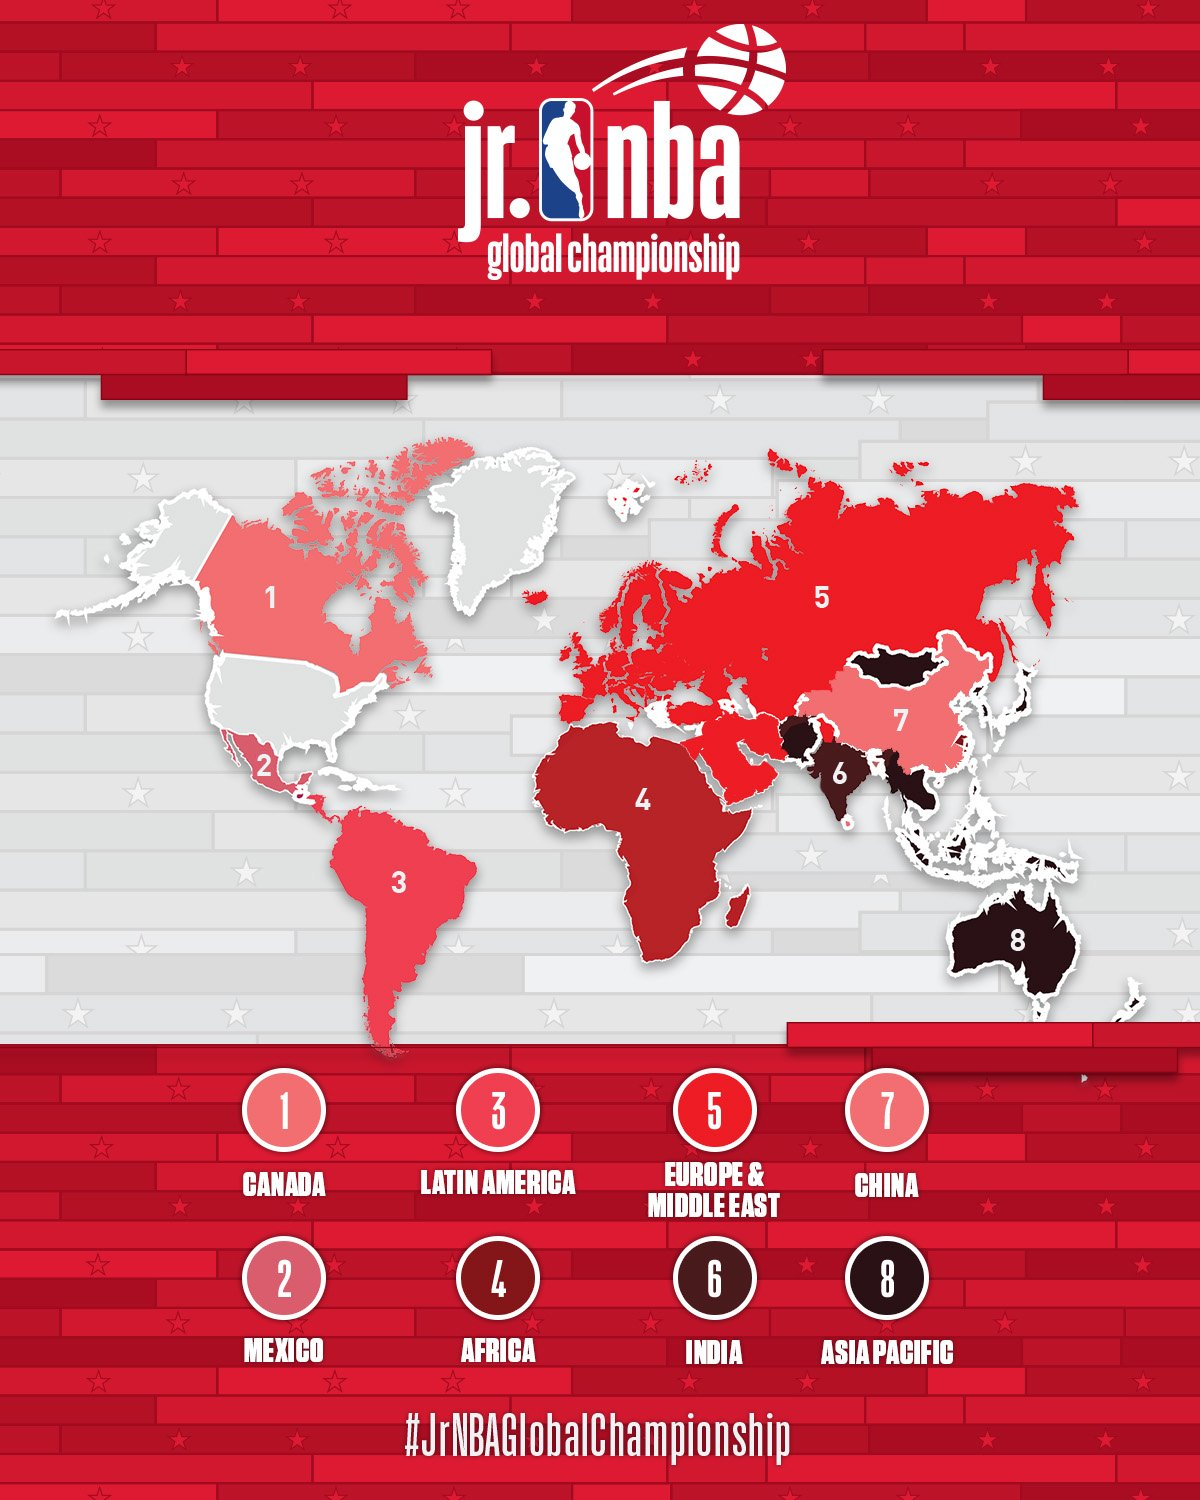 NBA Expands Second Annual Jr. NBA Global Championship with Integration of NBA Teams